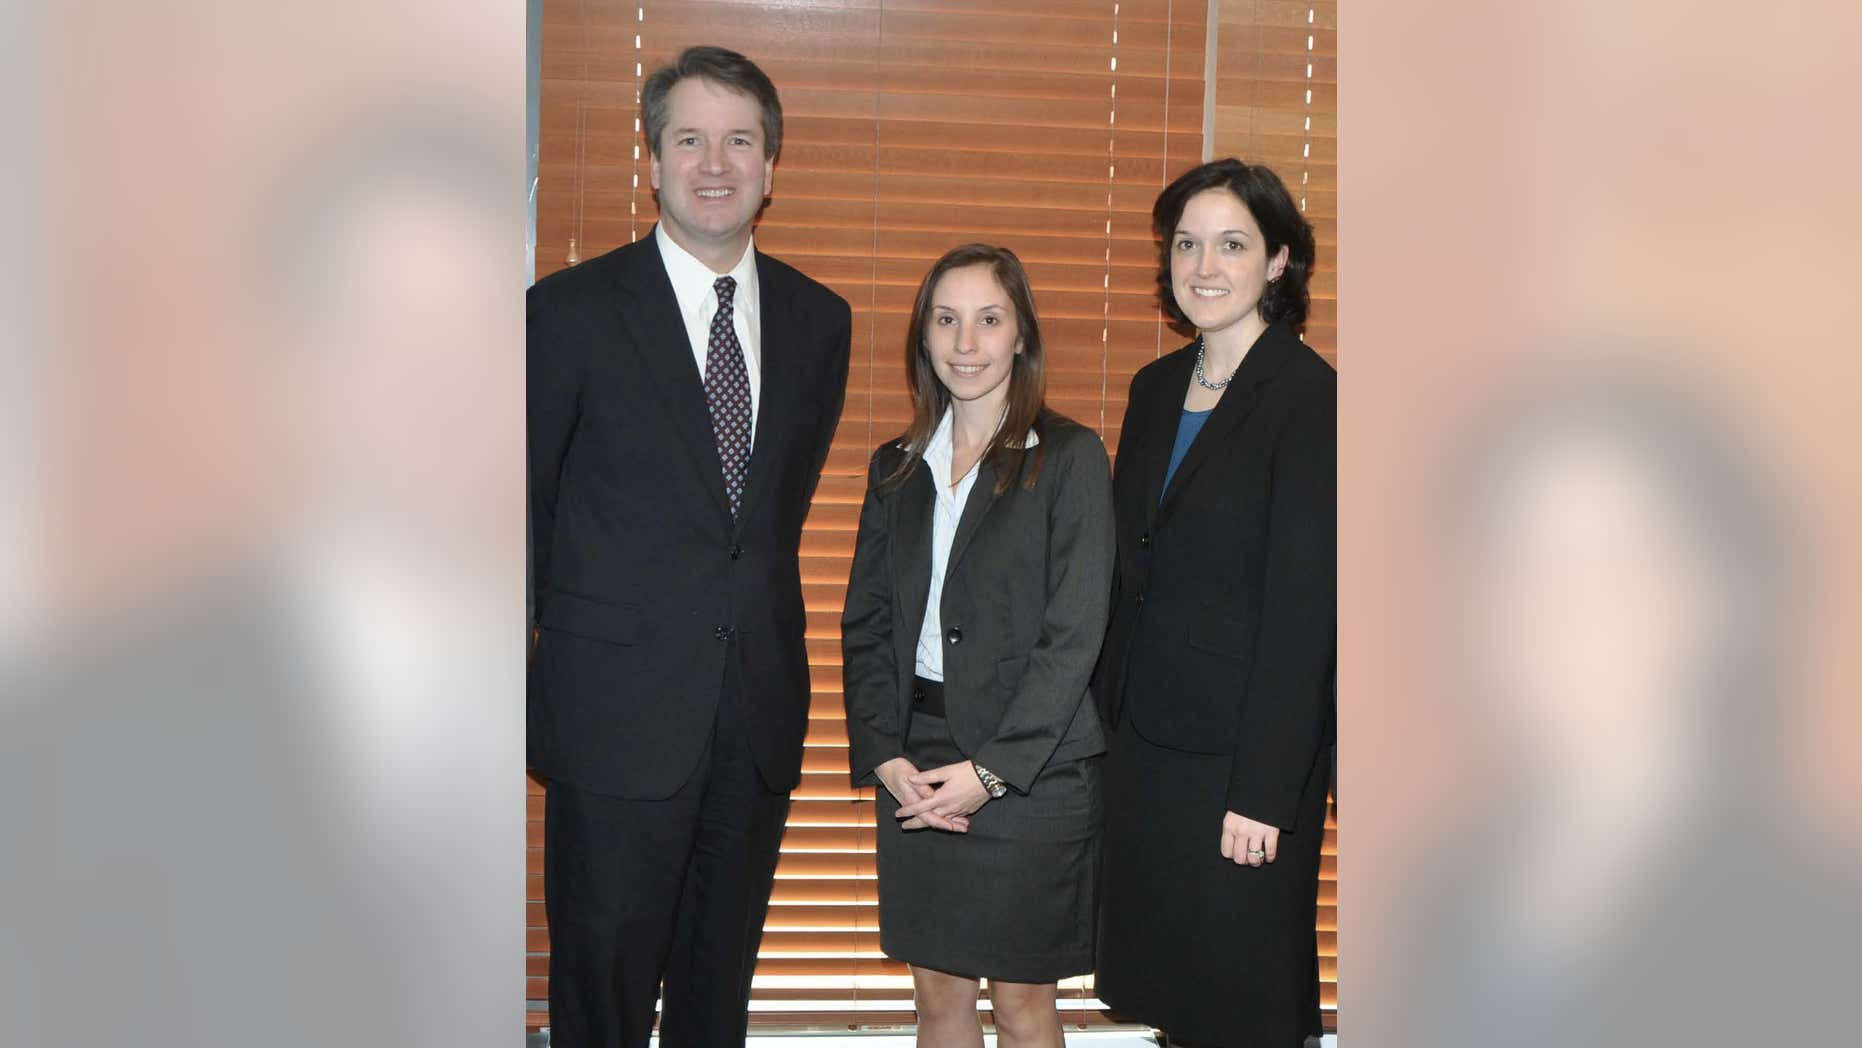 Judge Brett Kavanaugh with former law clerks Rebecca Taibleson (left) and Sarah Pitlyk (right)